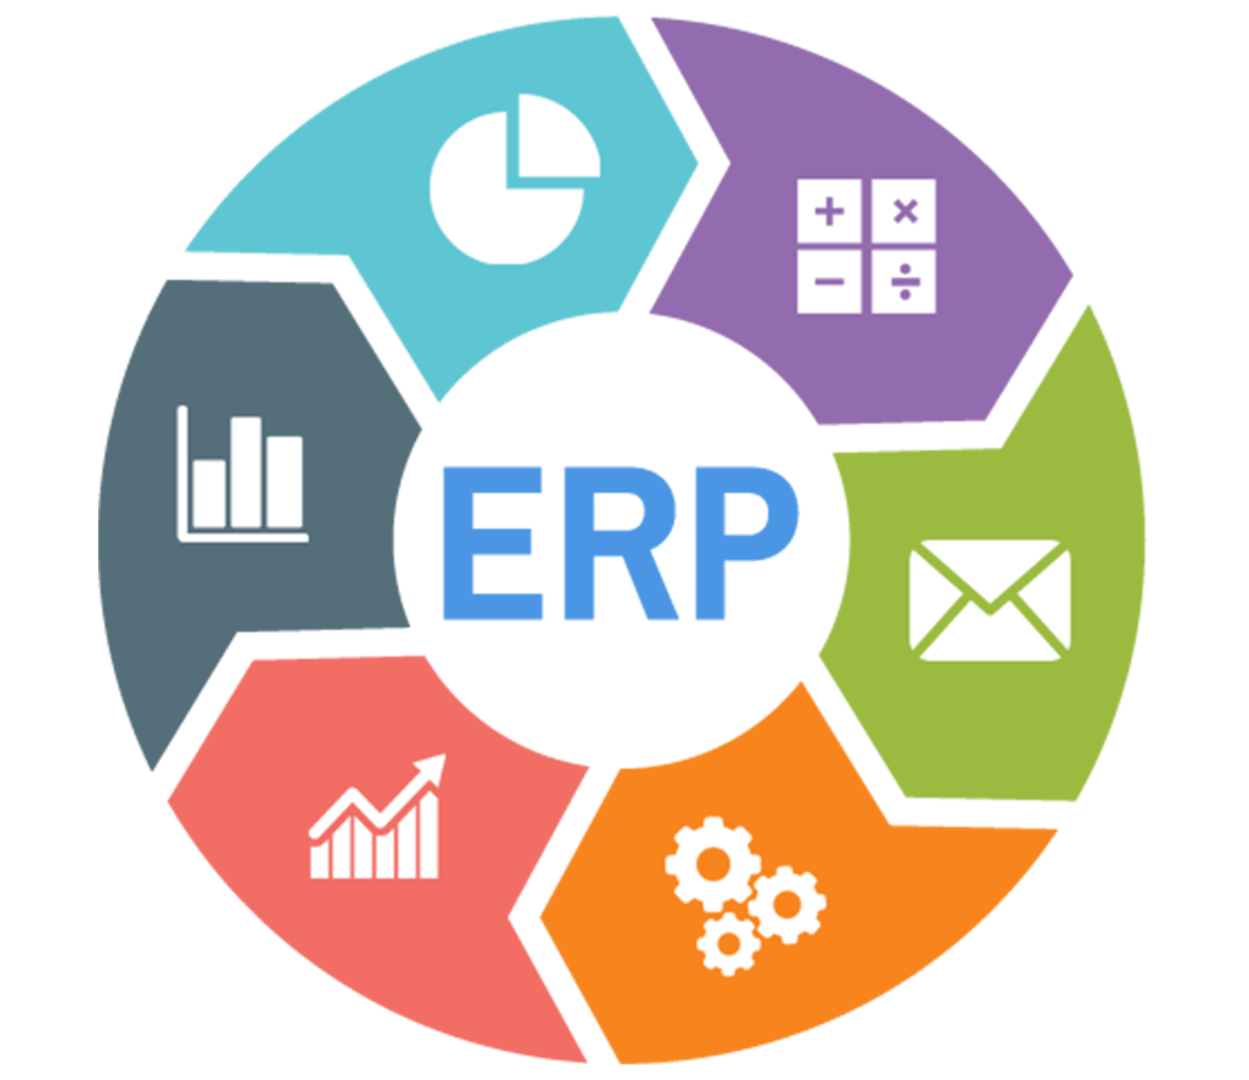 open source erp 16 January 19, 2021